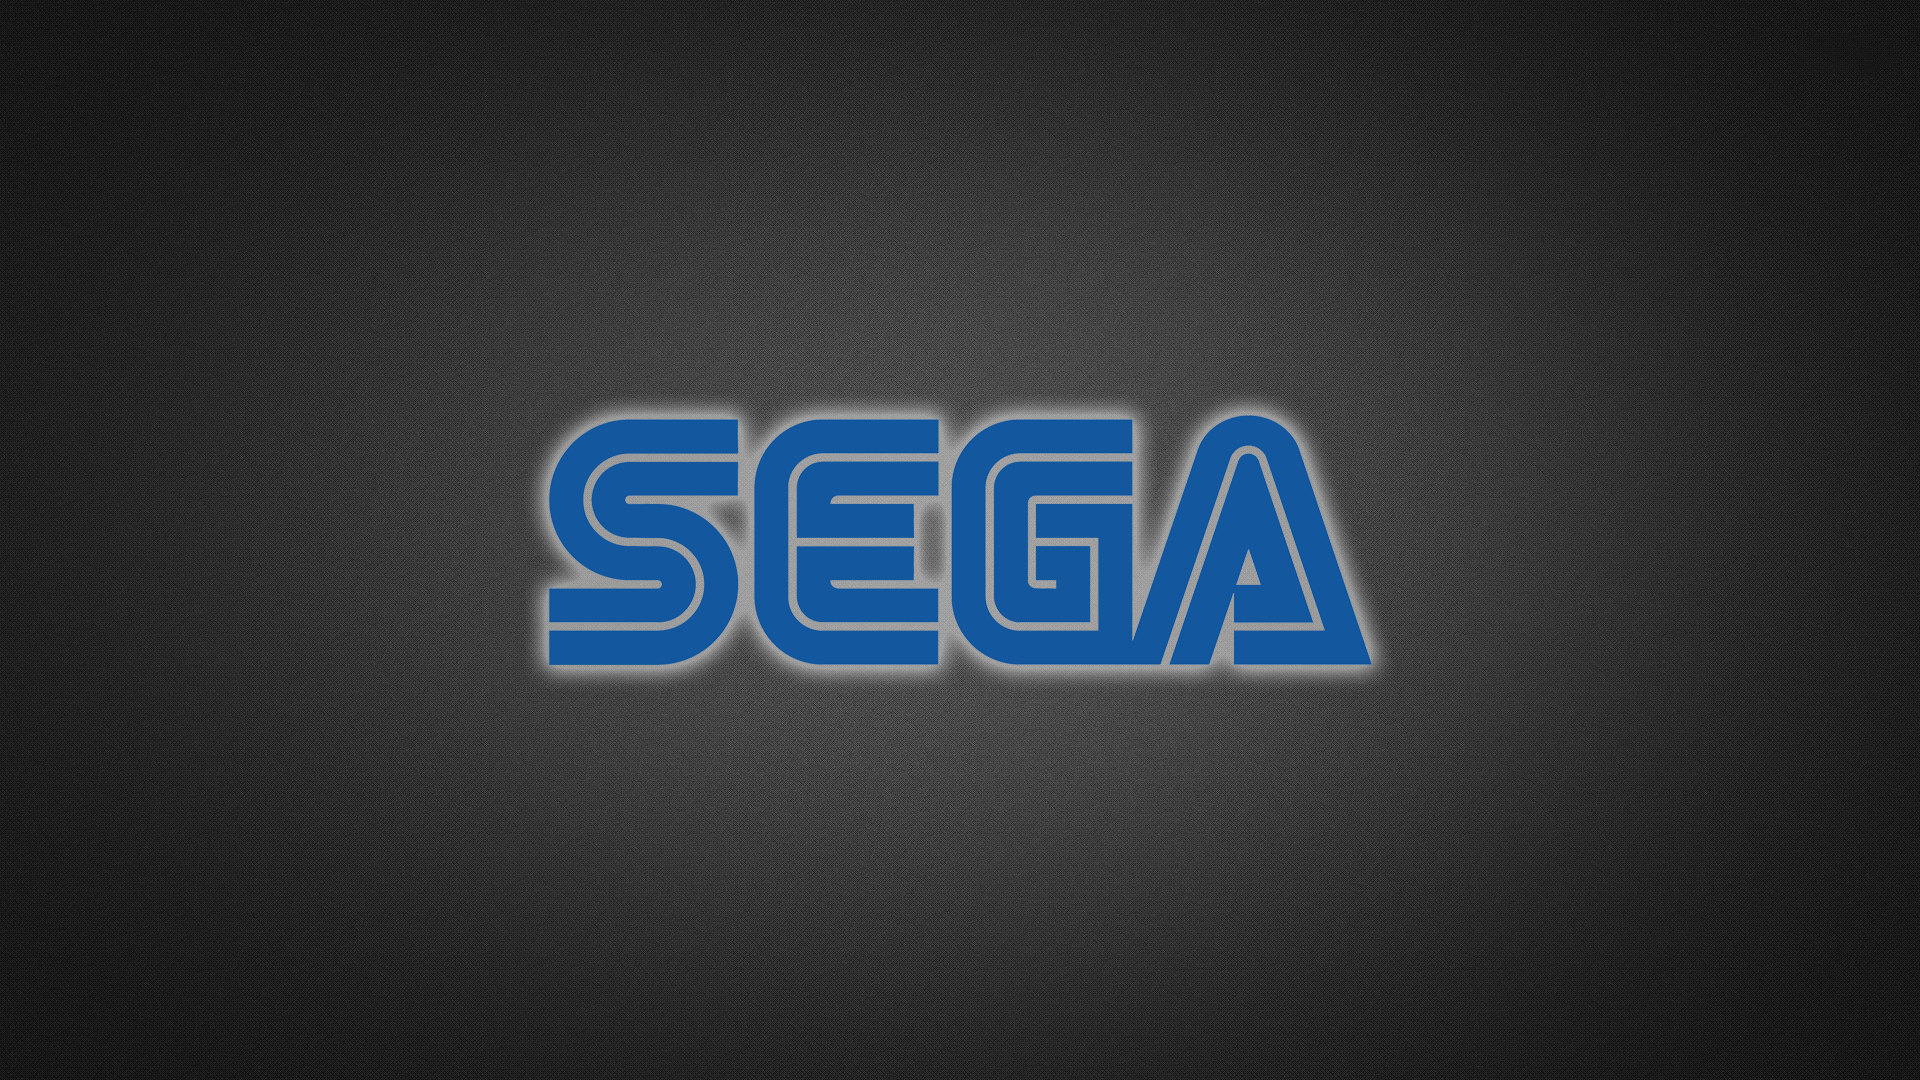 ... SEGA logo wallpaper (1920 x 1080) by festivus31